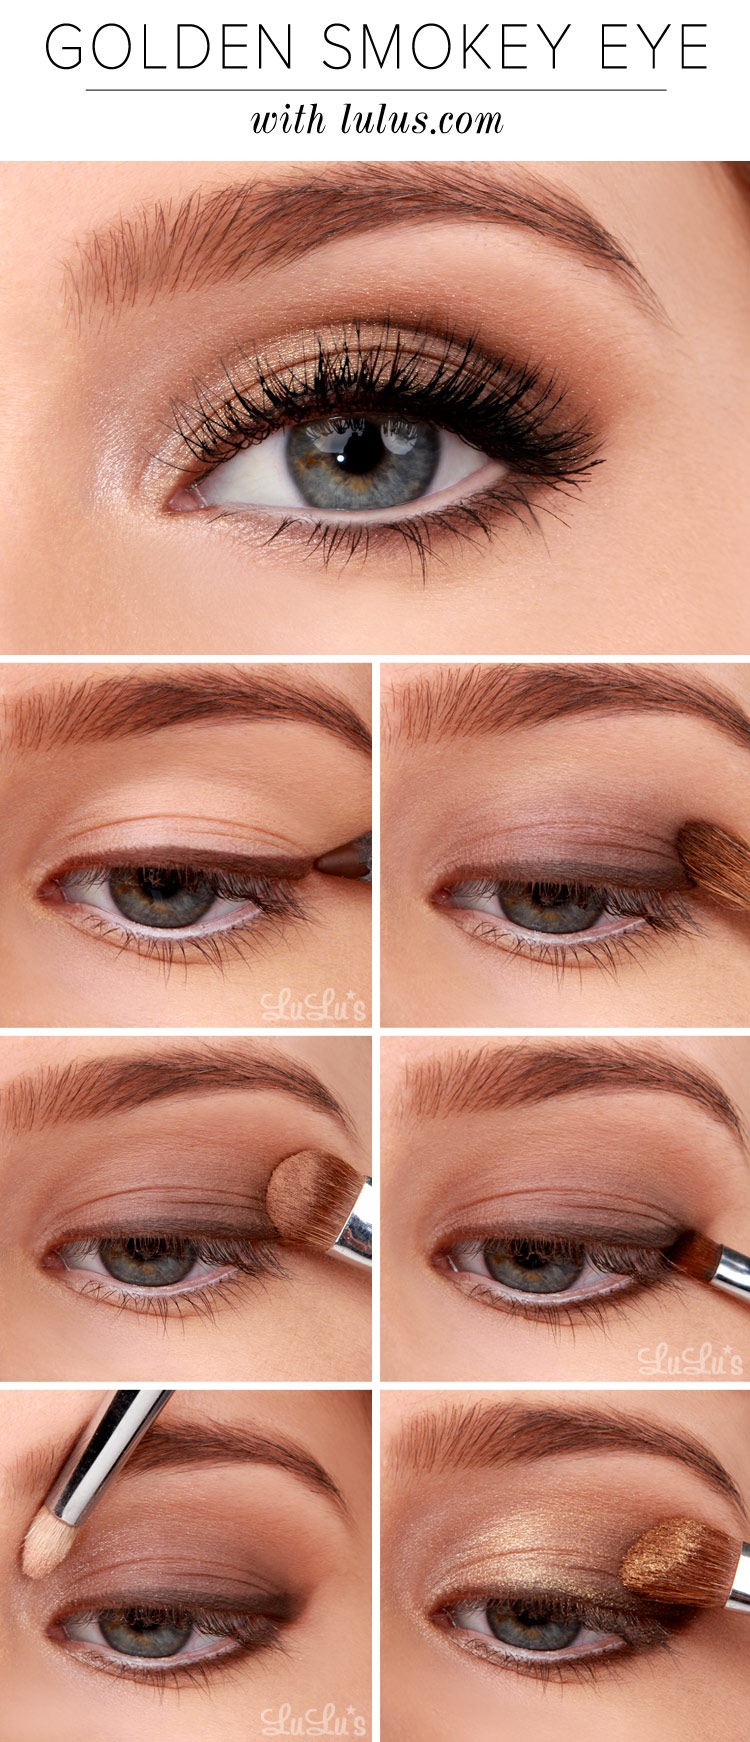 lulus how-to: golden smokey eyeshadow tutorial - lulus